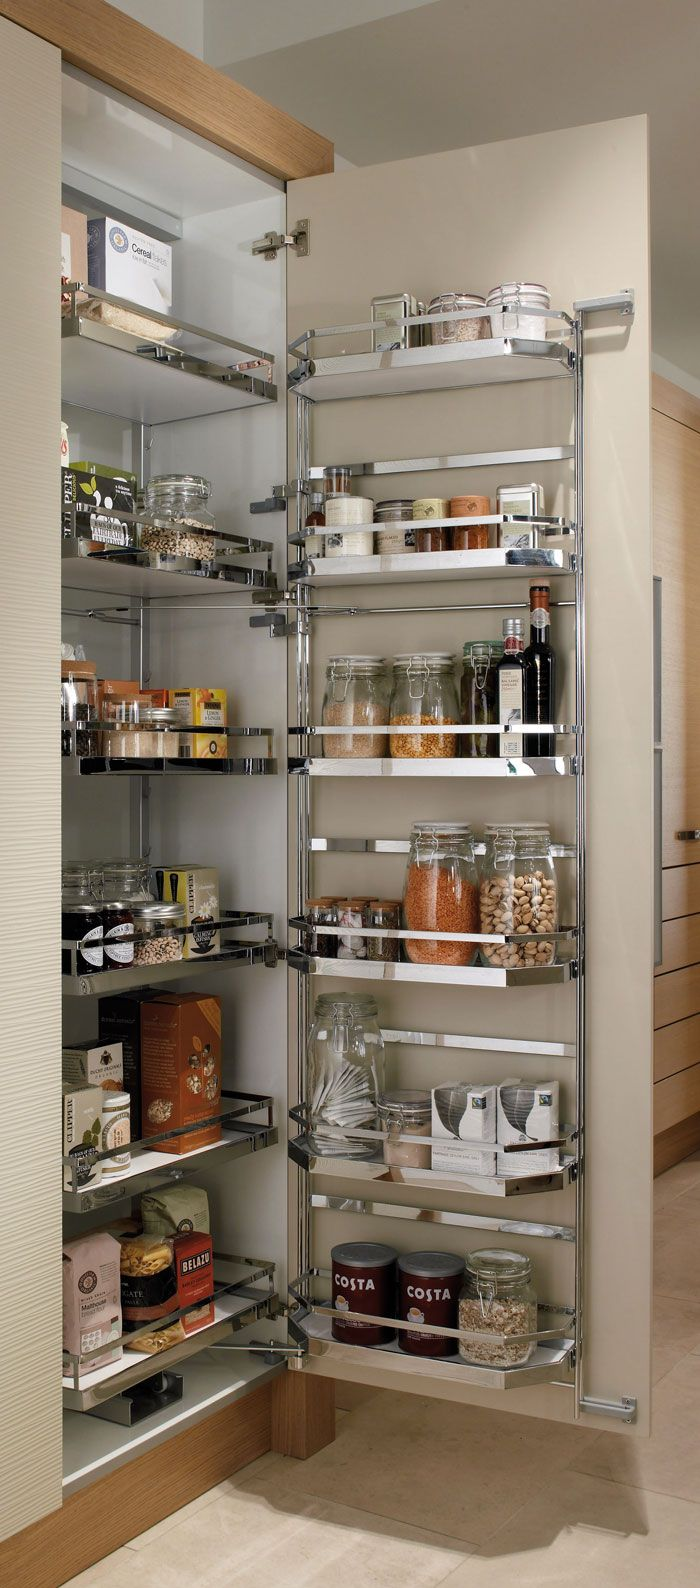 A Pull Out Larder Would Be A Great Use Of Space Too Picture From Http Www Sncollection Co Uk Home Kitchens Kitchen Interior Modern Kitchen